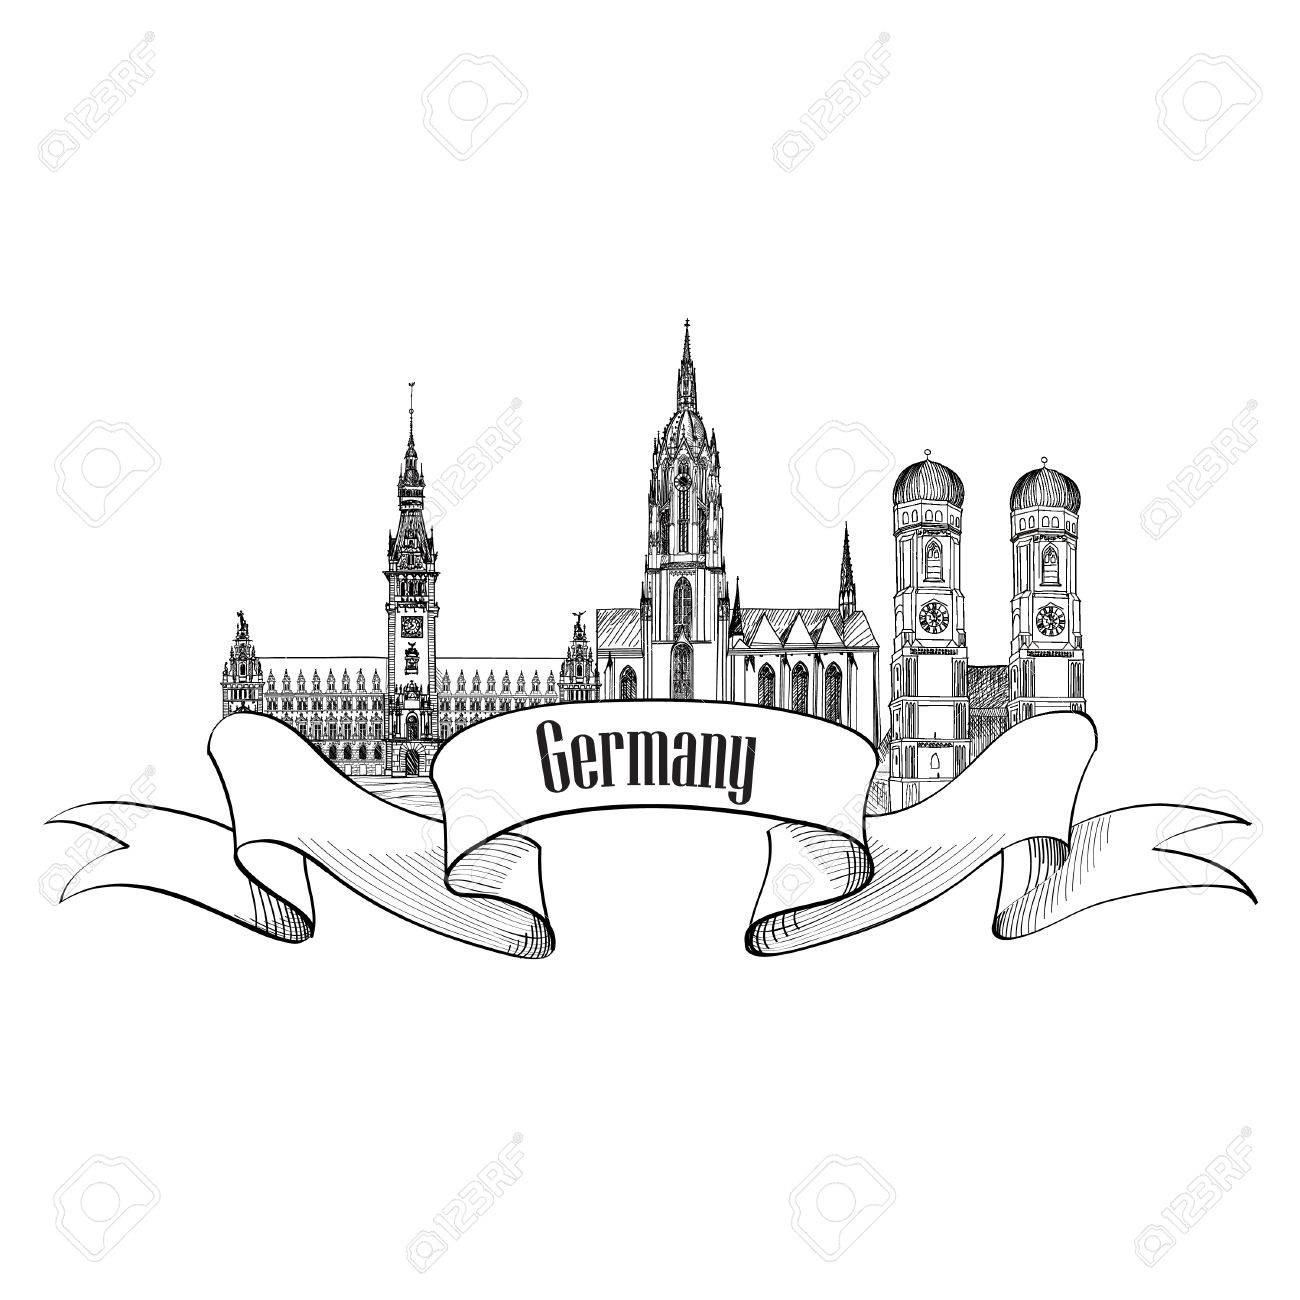 Germany label  Travel German city symbol  Famous german architectural